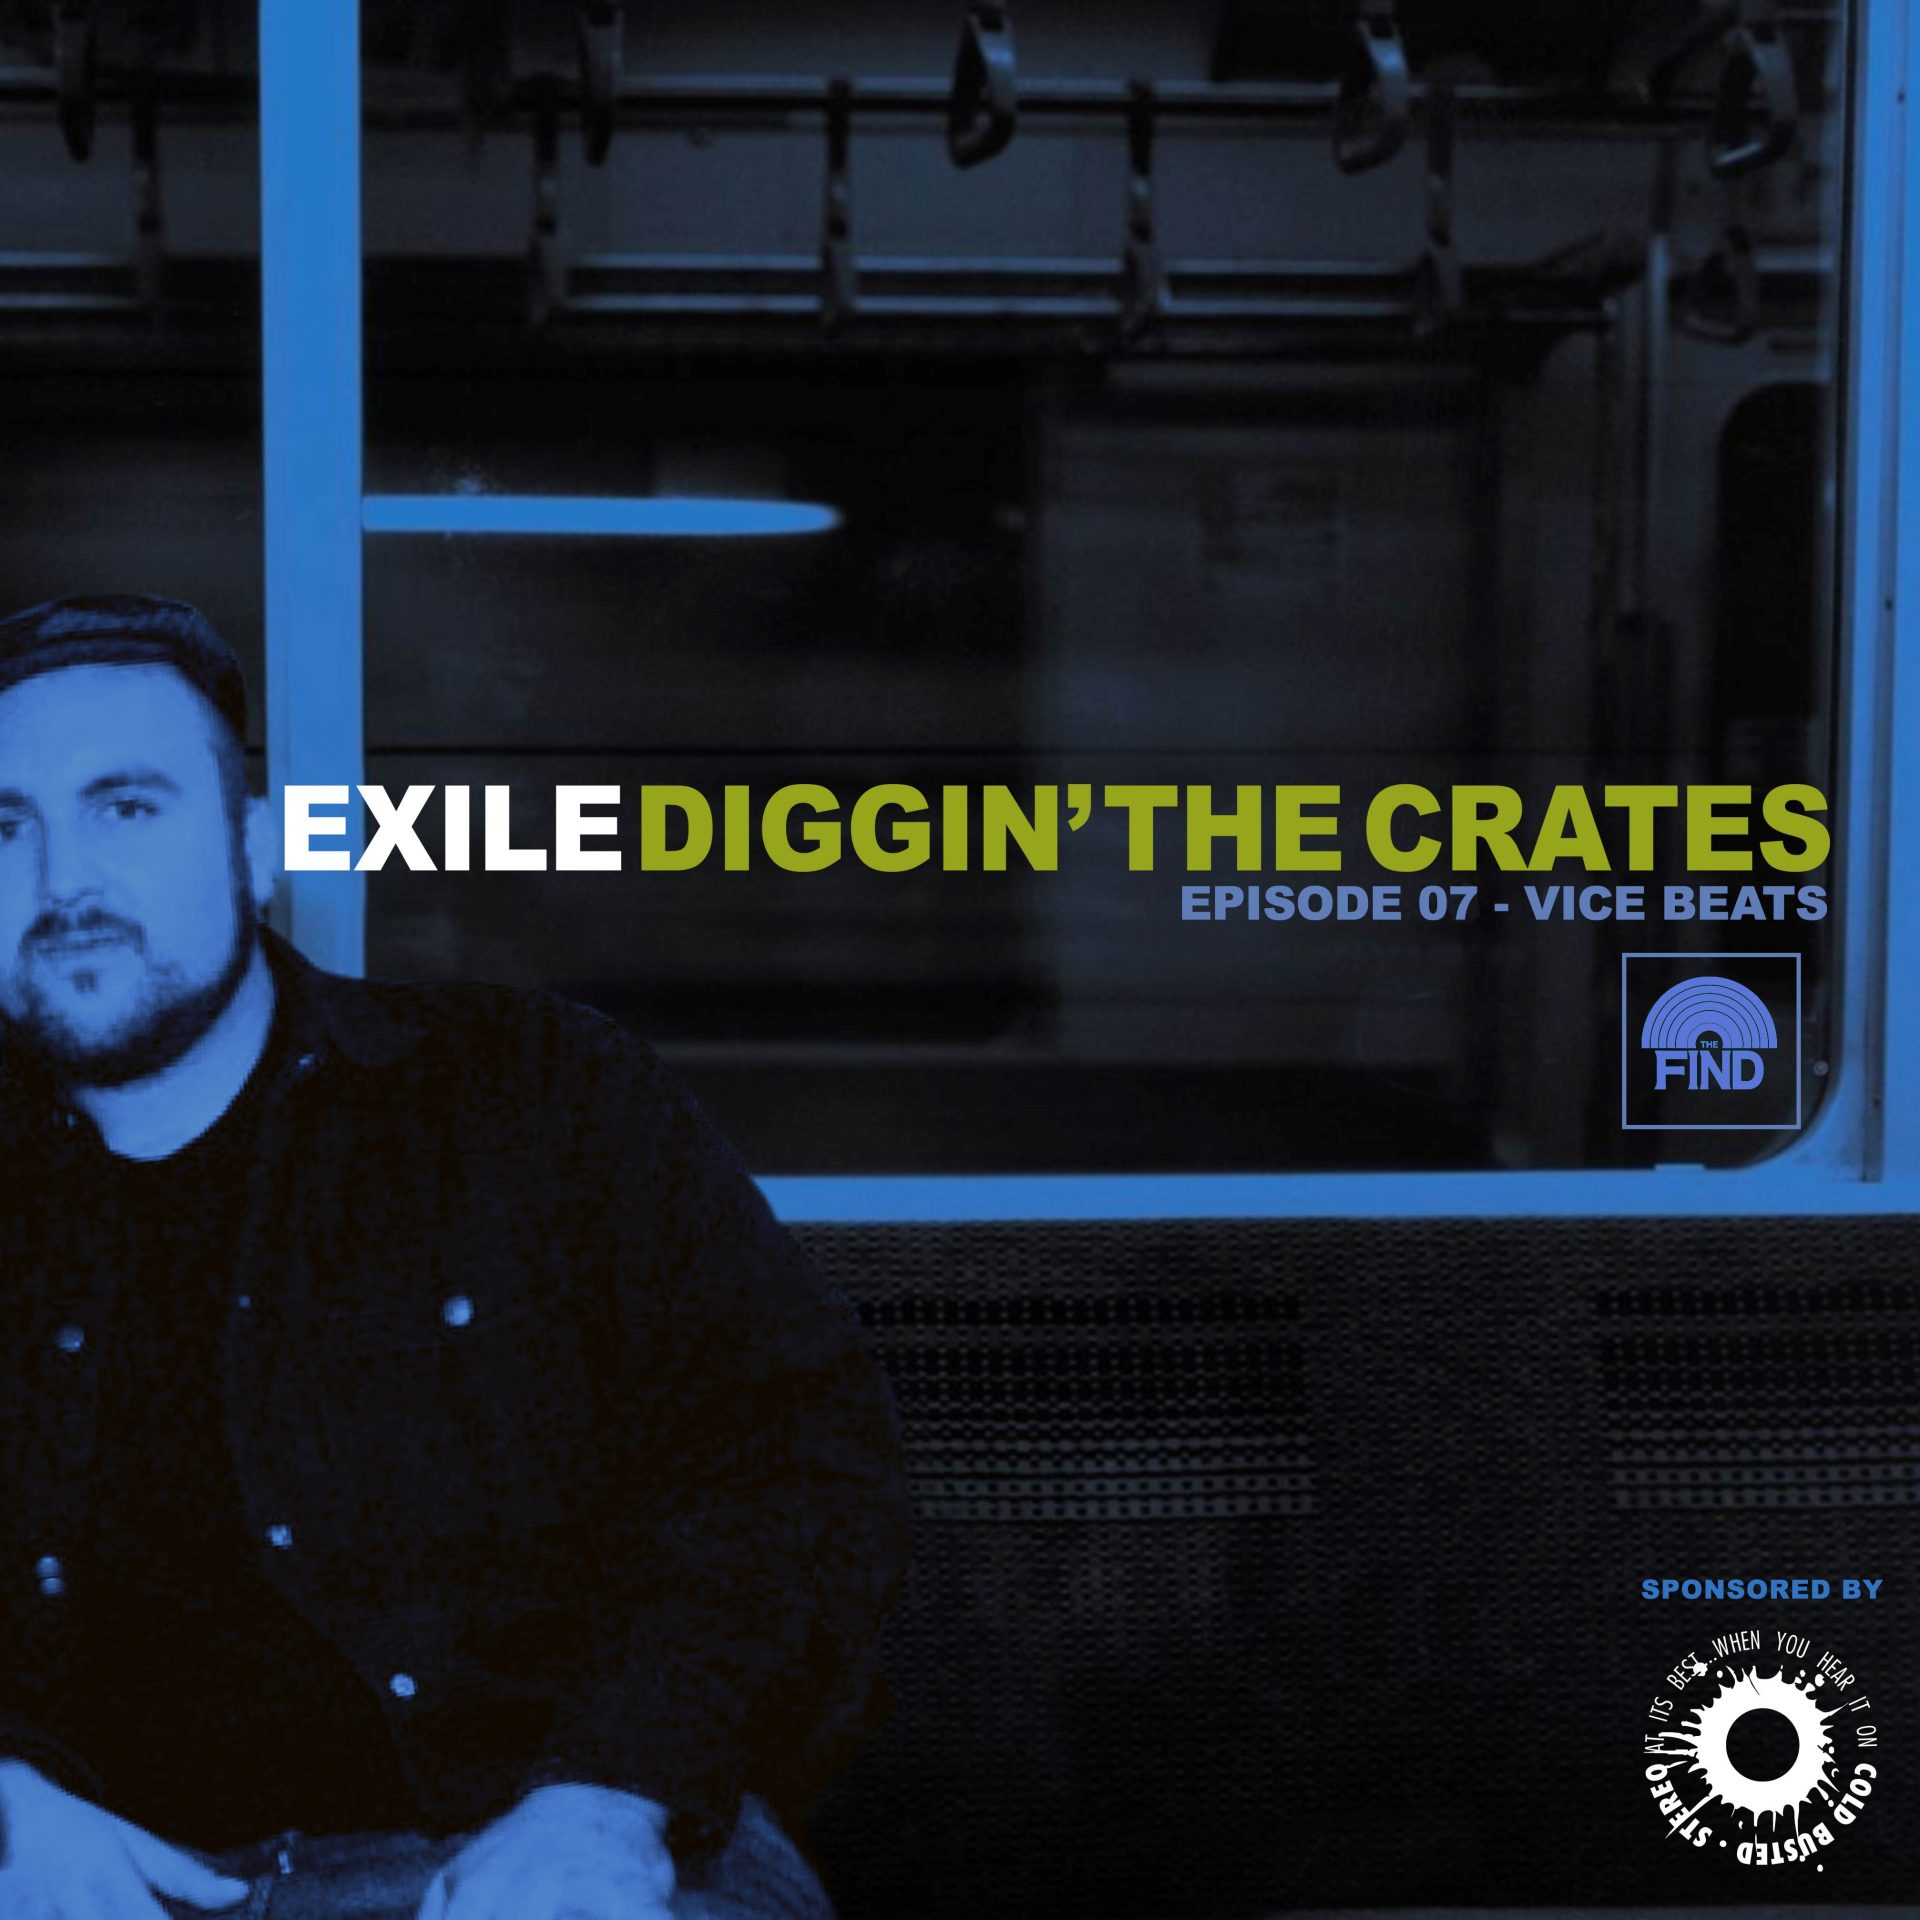 Last episode of Season 2 of Diggin' The Crates: Exile